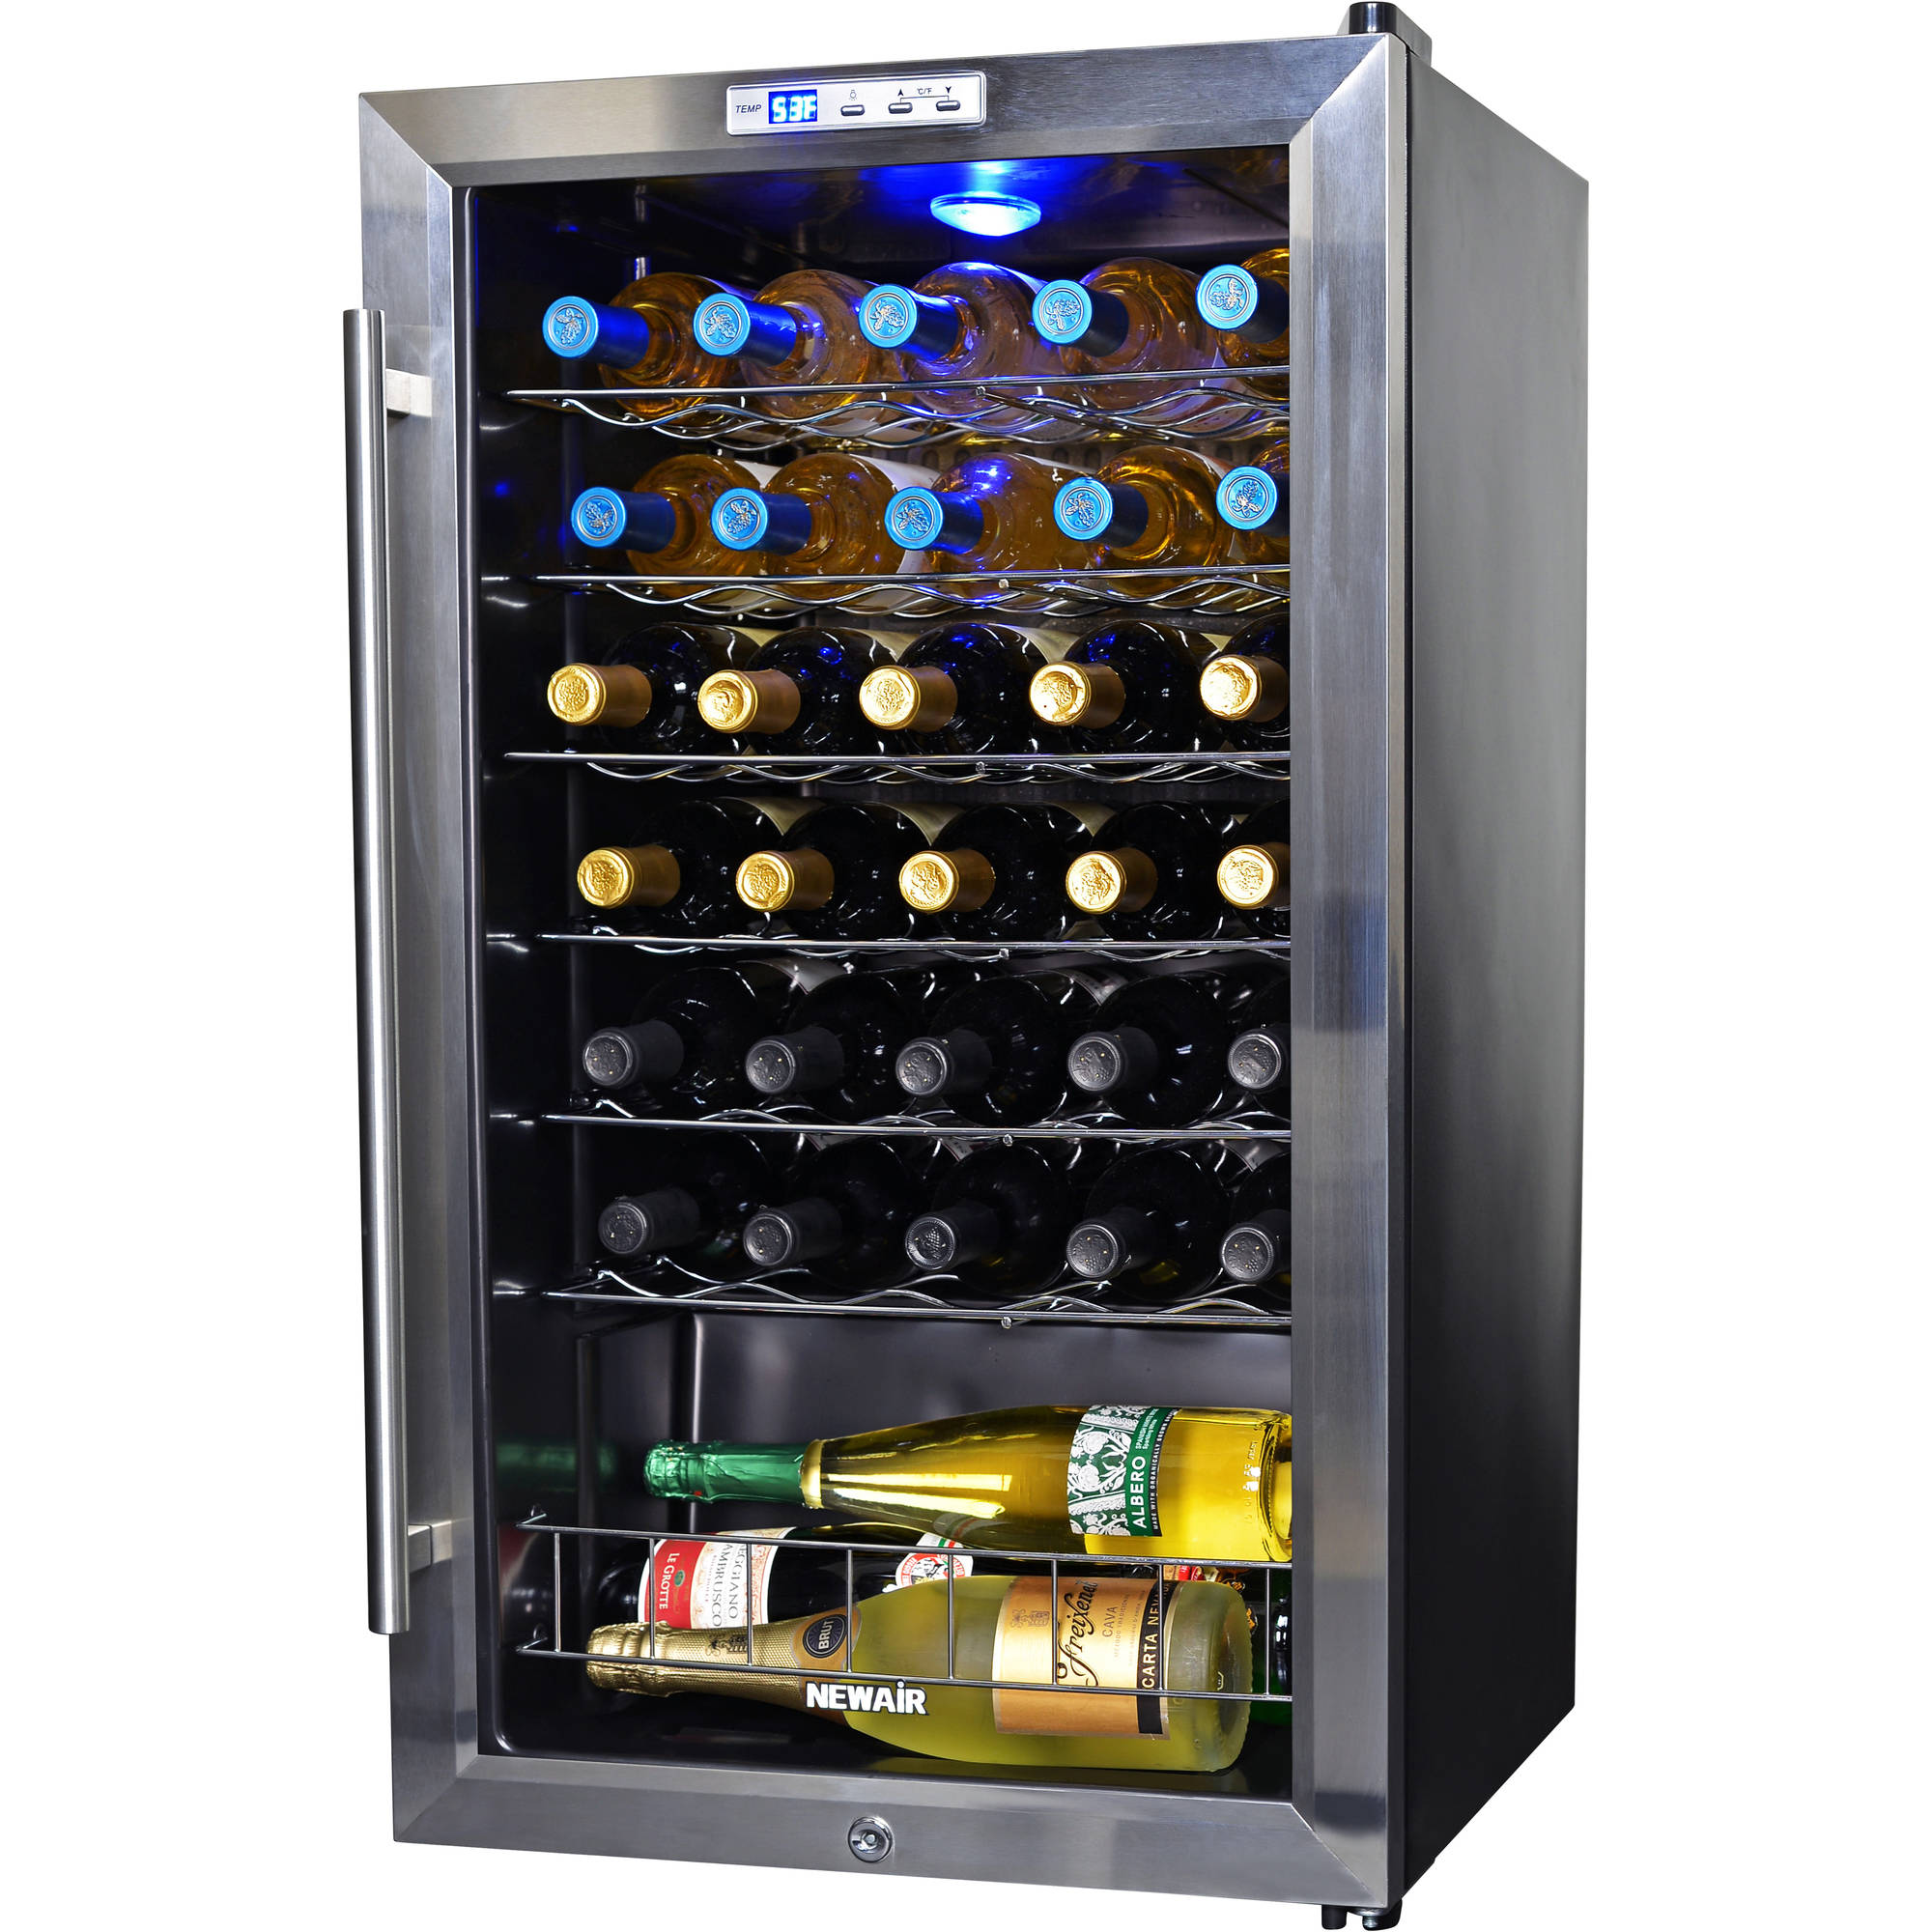 NewAir AWC-330 33-Bottle Compressor Wine Refrigerator, Stainless Steel and Black